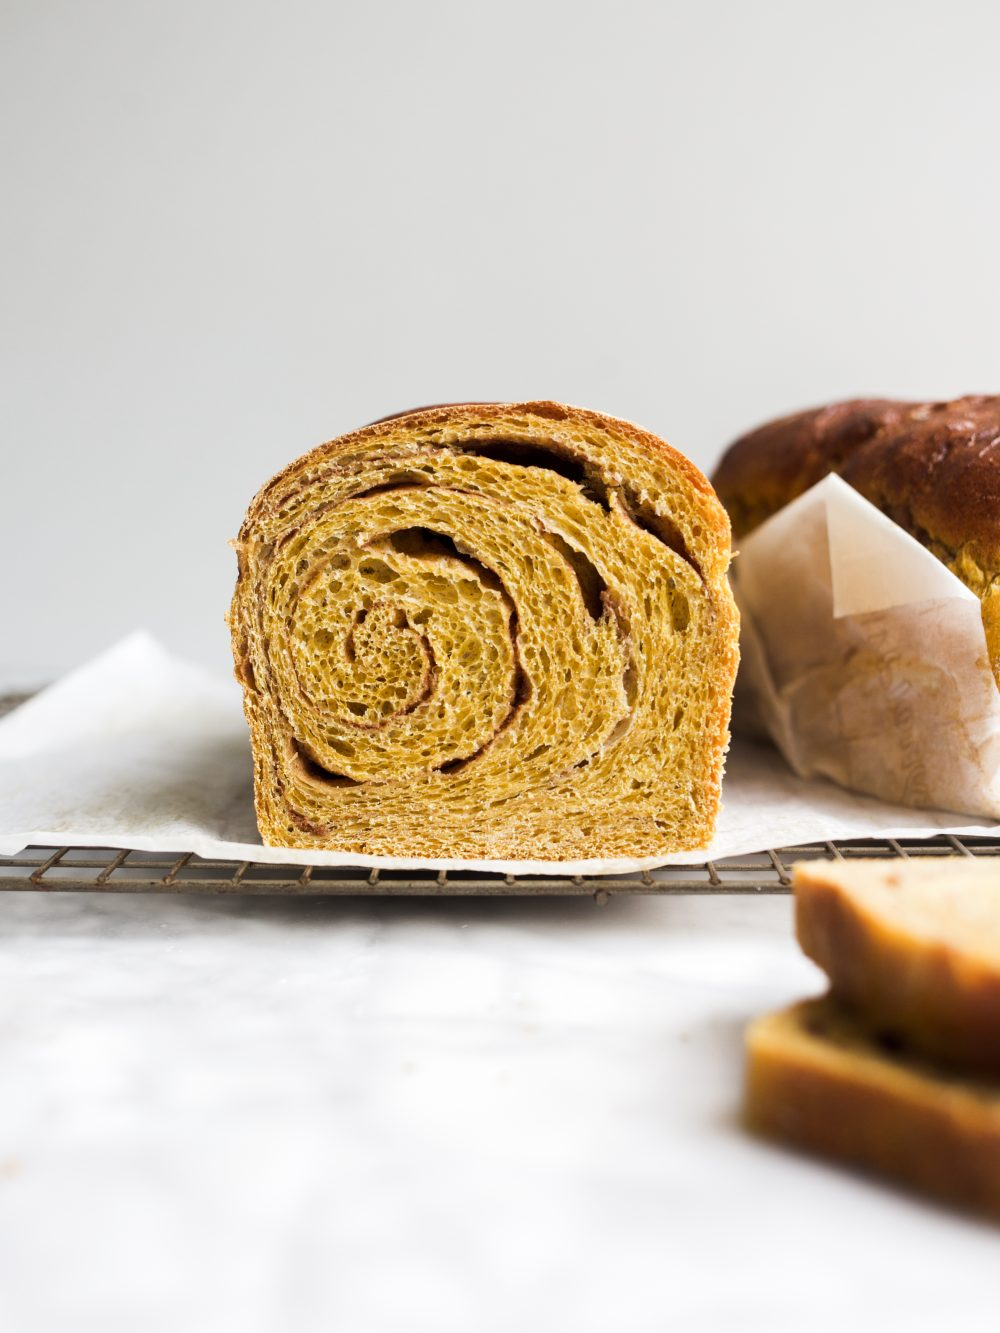 Pumpkin Swirl Bread by Wood and Spoon blog. This is a fluffy pumpkin yeast bread swirled with brown sugar and cinnamon and pumpkin pie spice. The bread is fragrant and works wonderfully for morning toast. Learn how to make a fall sandwich or yeast bread and how simple it is to add sugar to bread dough on thewoodandspoon.com